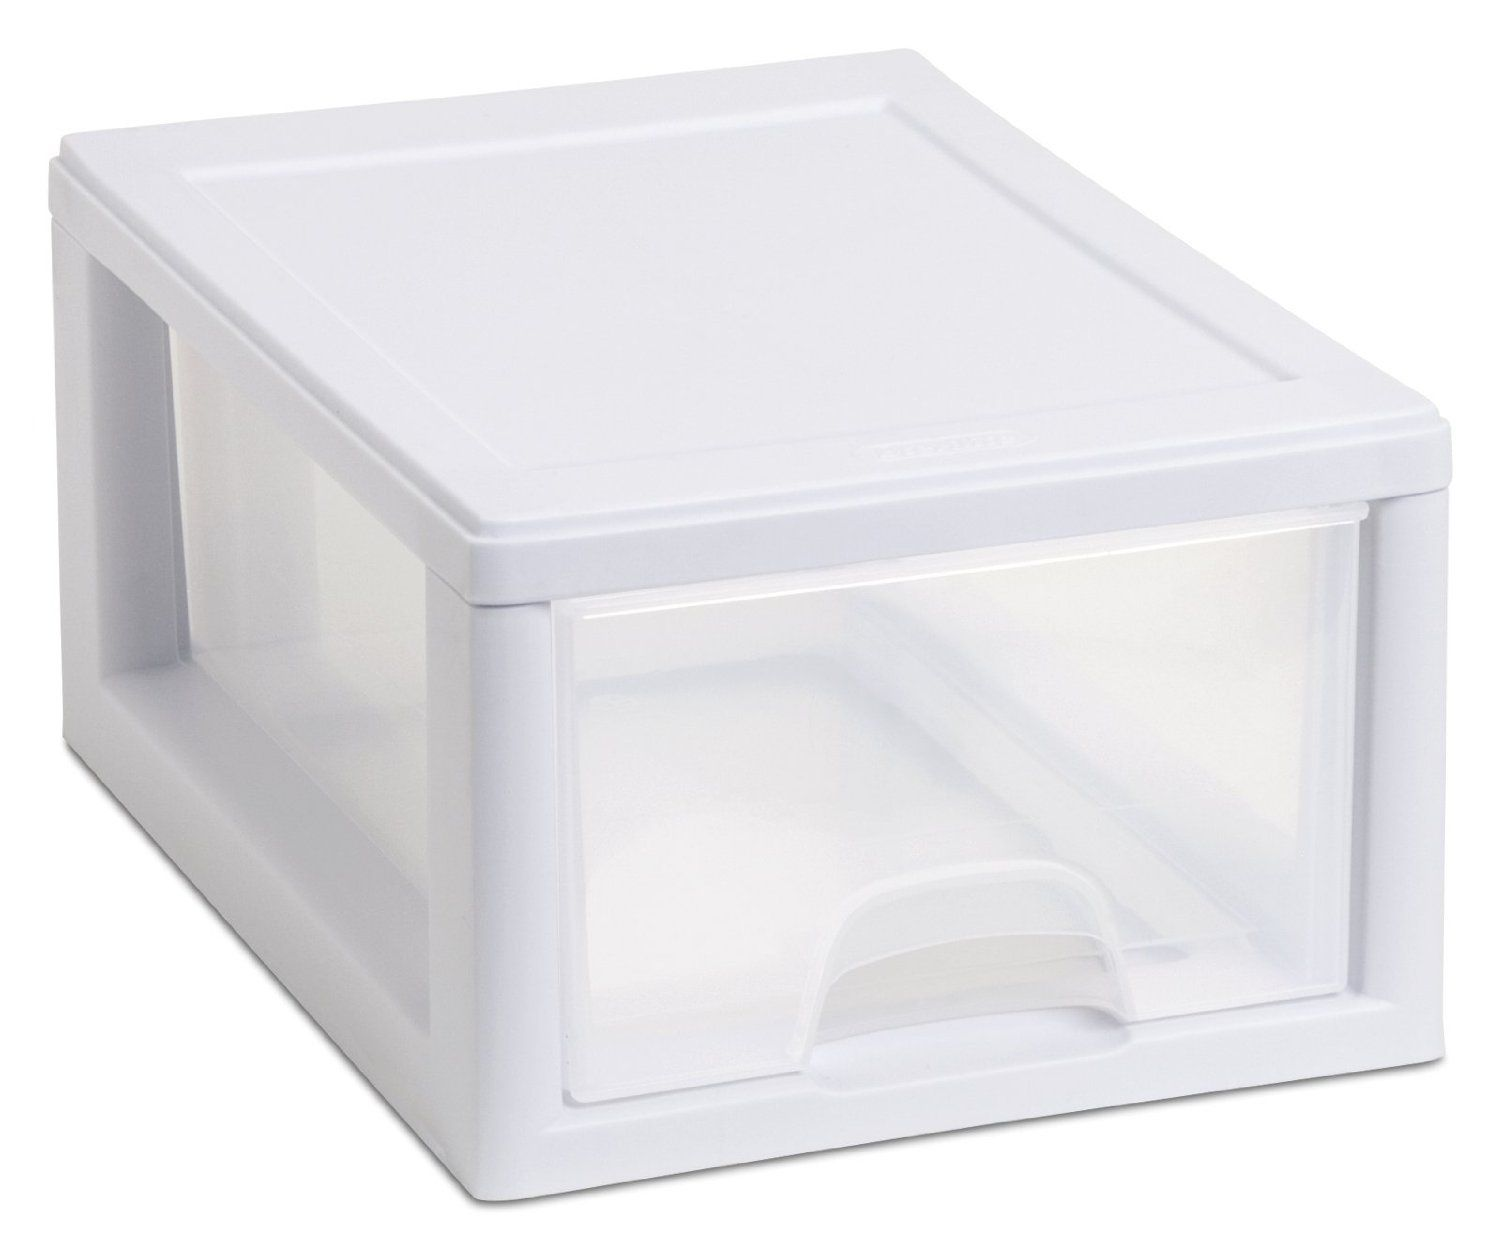 Single Plastic Drawer Storage Containers